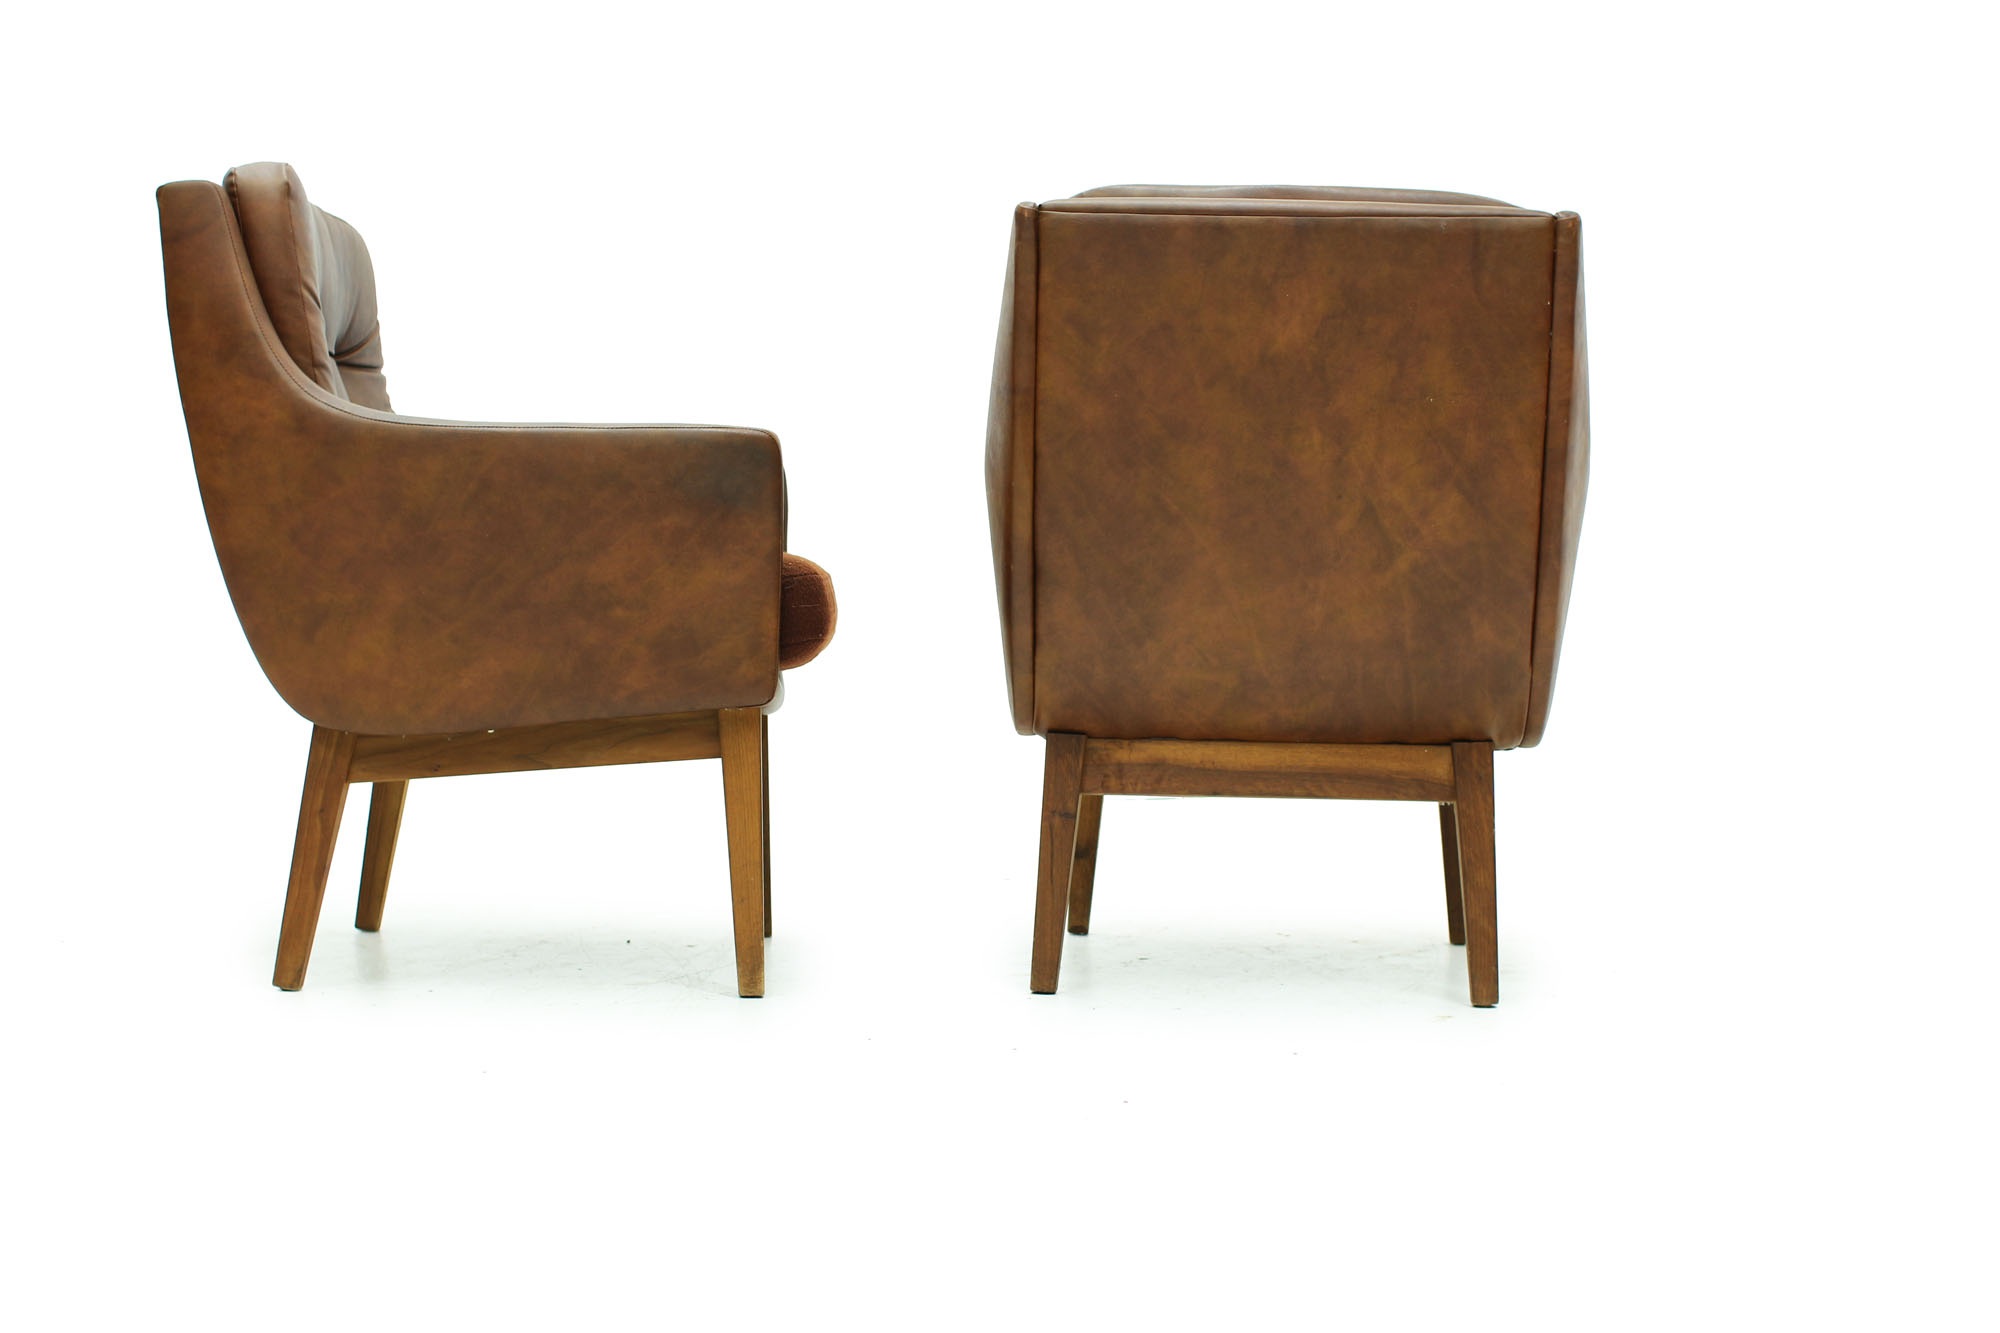 Set of tufted lounge chairs with original brown leatherette from the 60s (3).jpg